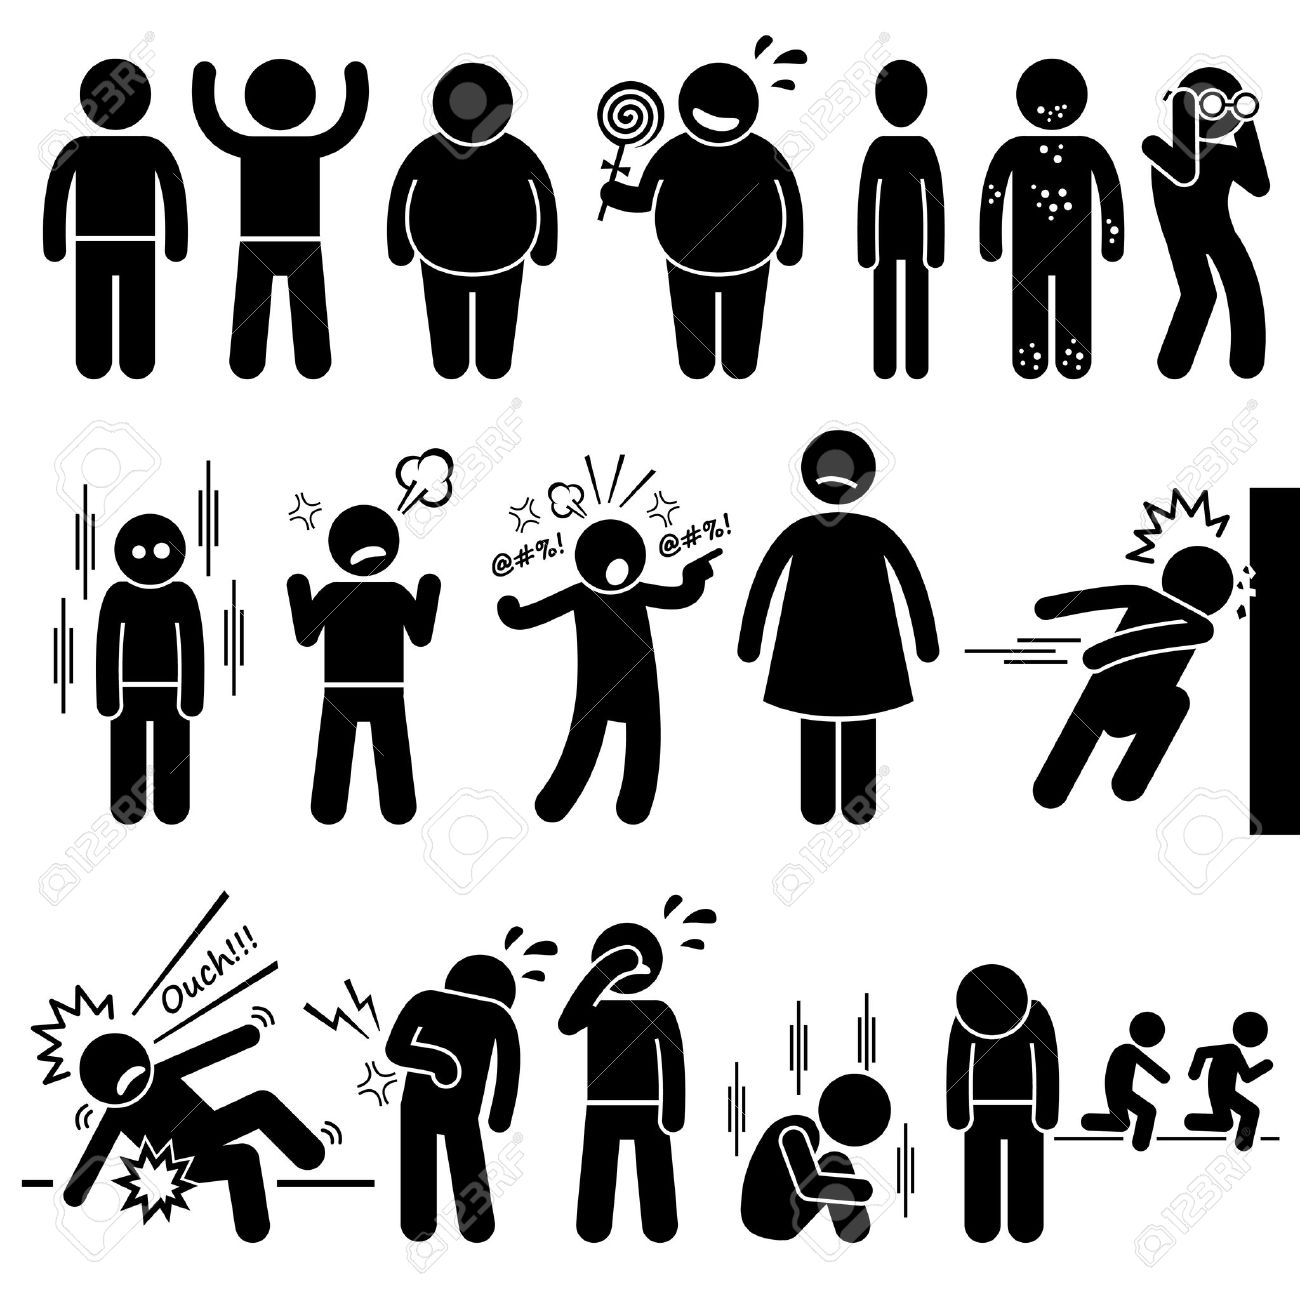 Children Health Physical and Mental Problem Syndrome Stick Figure Pictogram Icons - 52340741